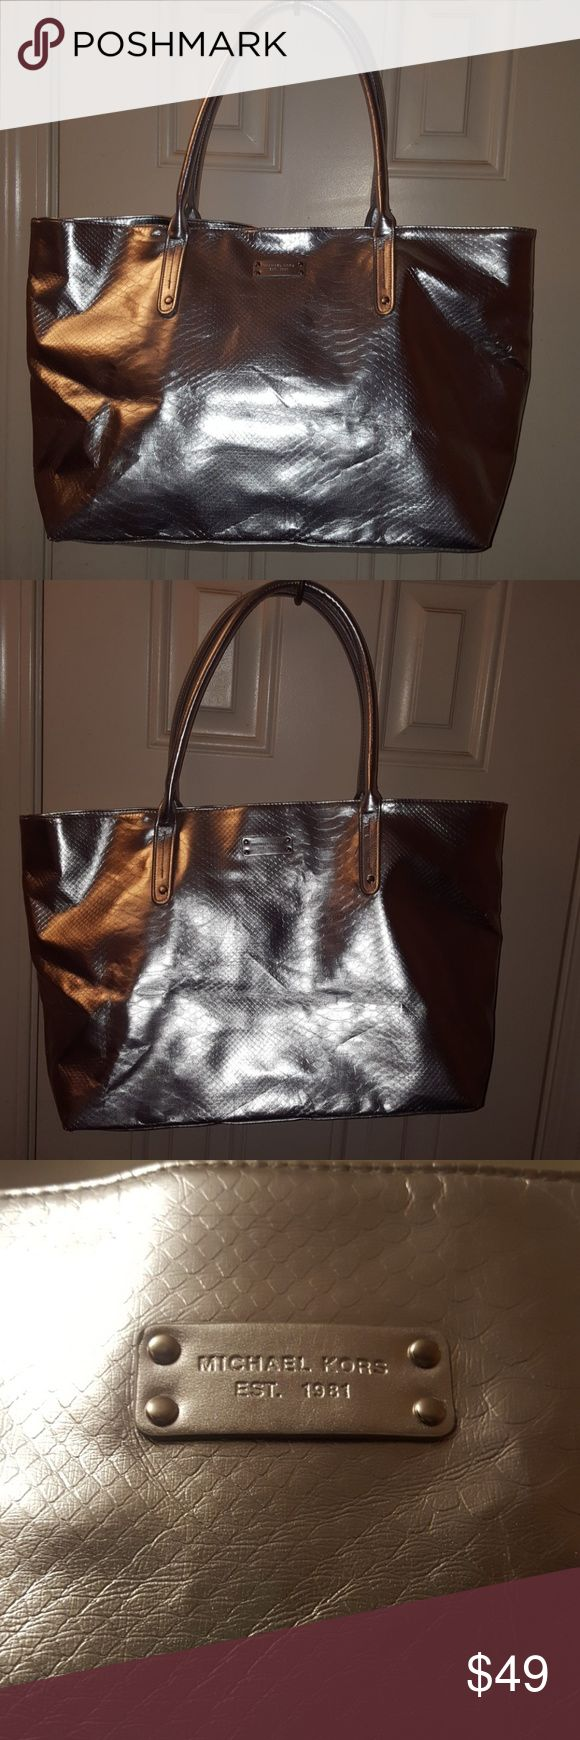 NWOT Michael Kors Silver tote bag Never used has slight crinkle (seen in pics)due to laying in closet will relax once in use Michael Kors Bags Totes